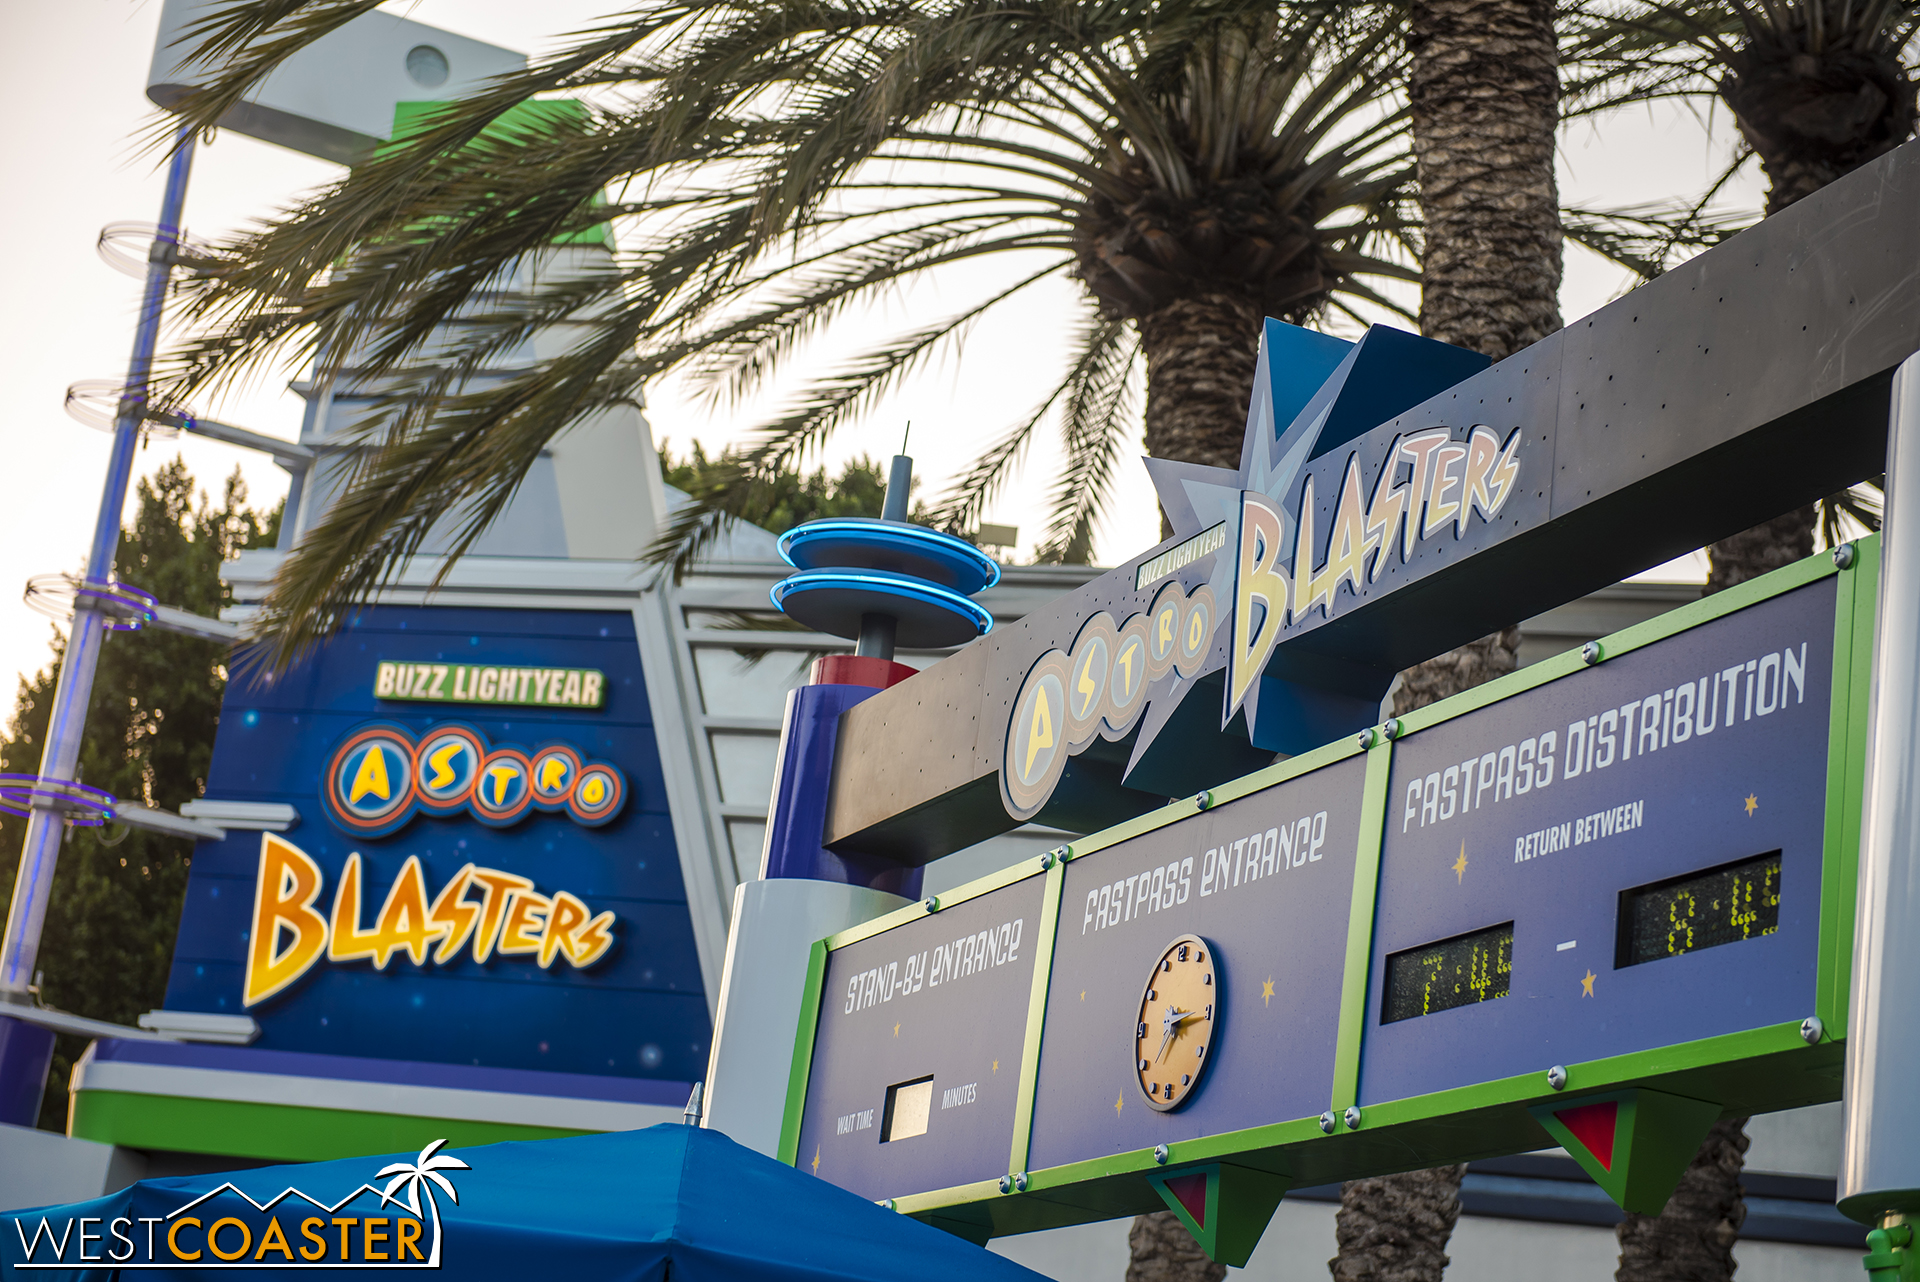 In another stroke of masterfully ingenious synergy, Disney creative also crafted this Buzz Lighyear ride for Pixar Fest—13 years ago.  So brilliant!